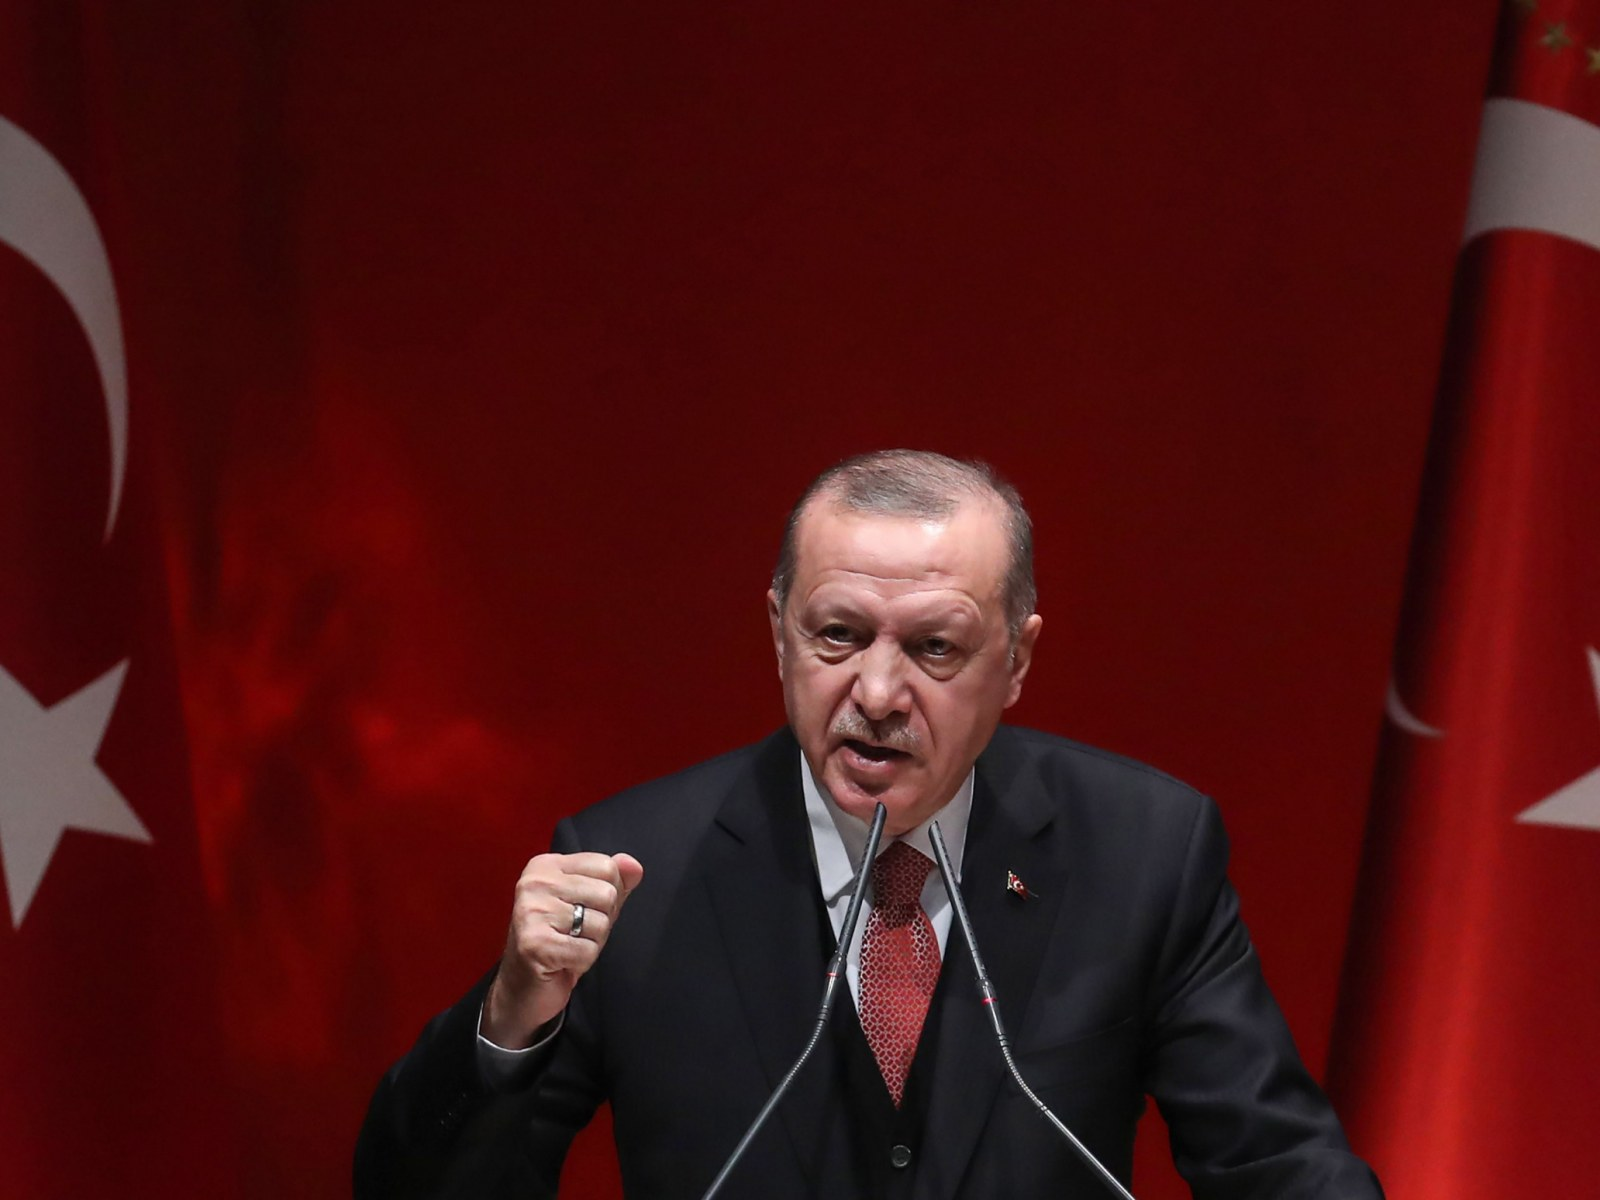 Turkeys Erdogan Defends Syrian Offensive In Op Ed Slams